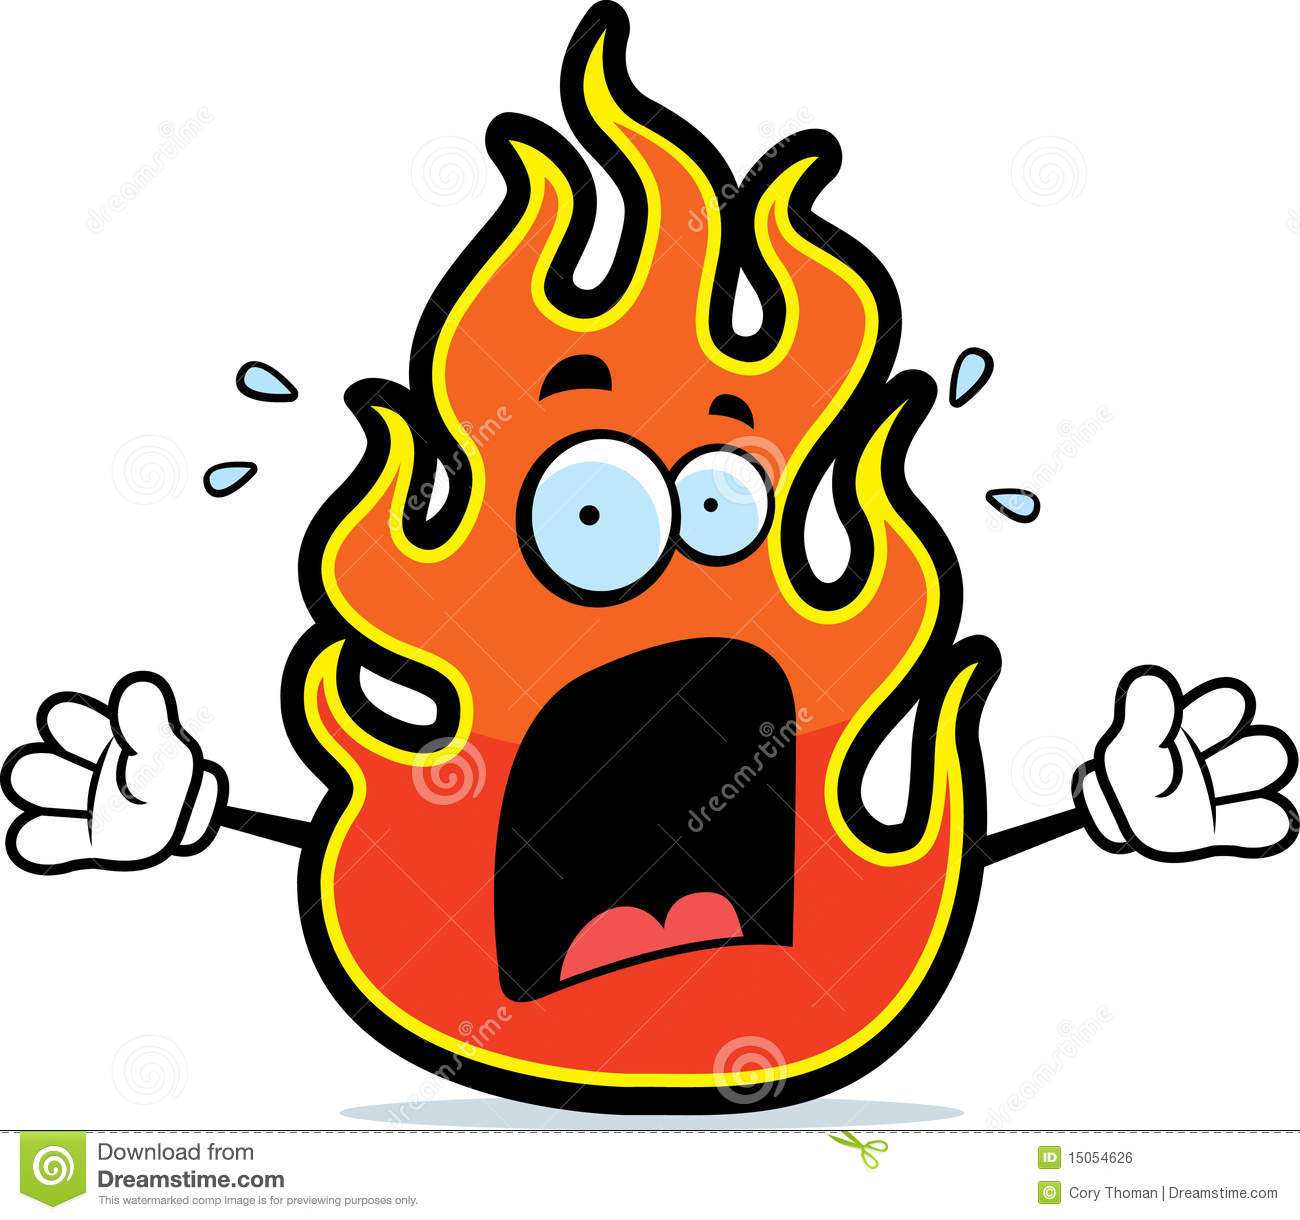 Clipart flames face. Fire flame cartoon panda